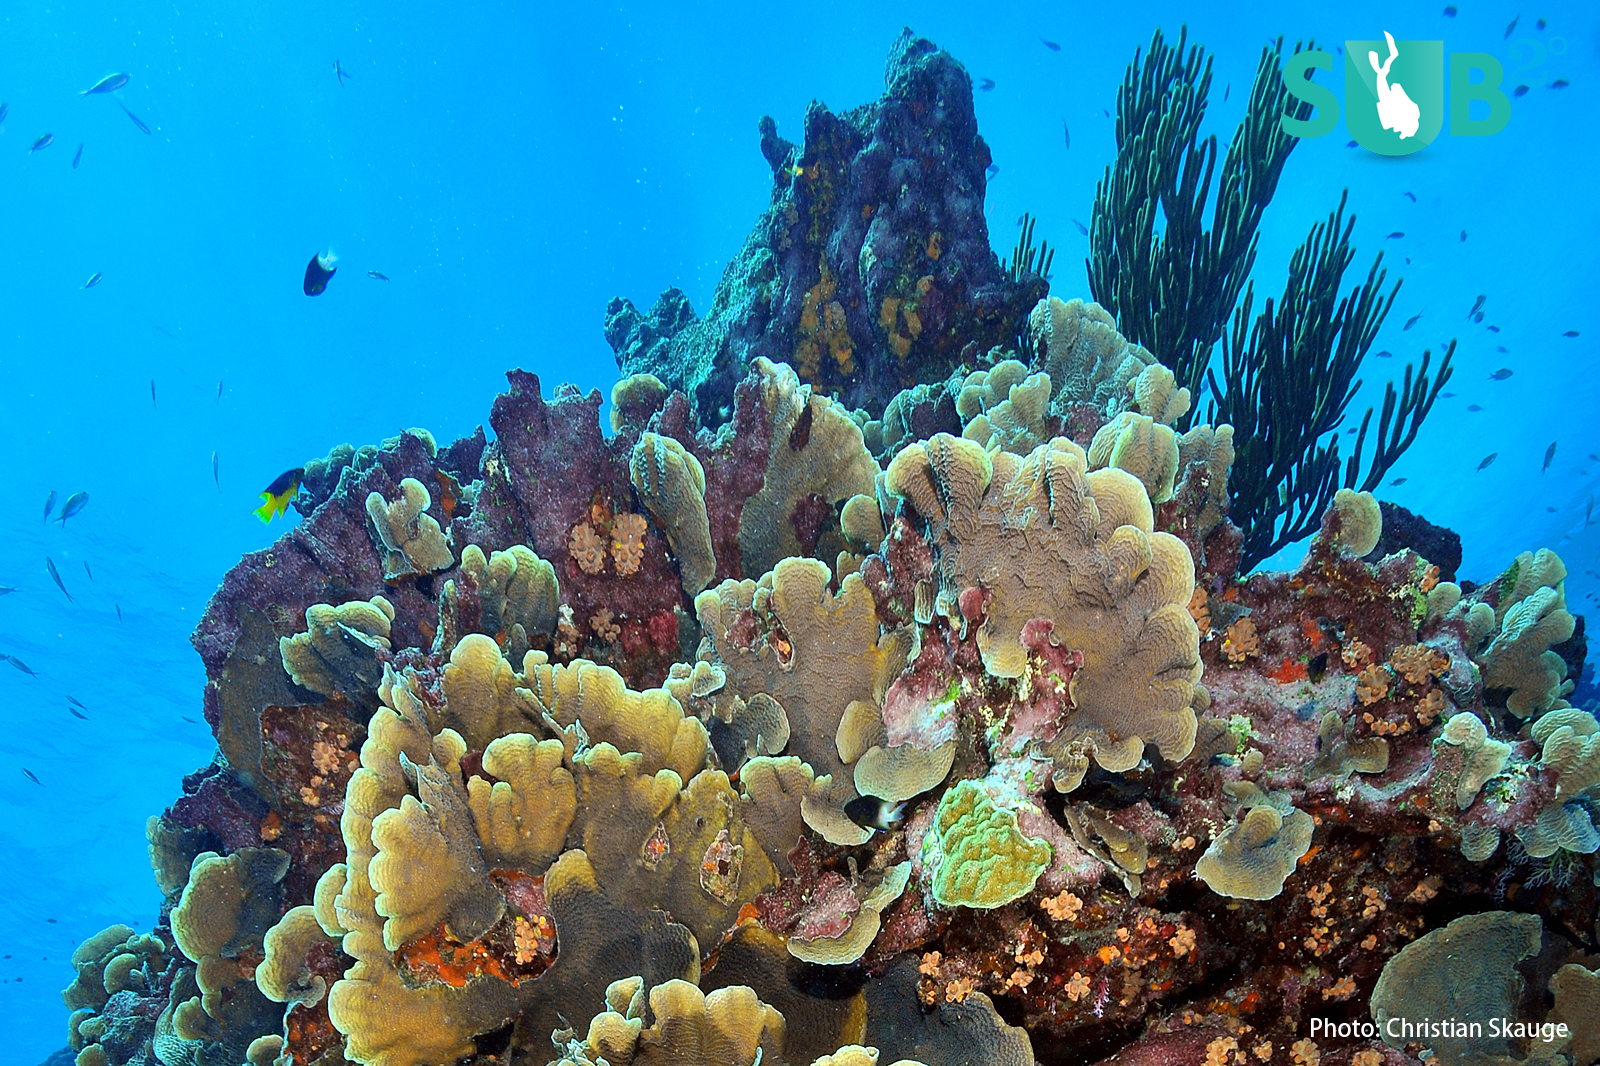 A colourful and healthy coral reef- the 'Rainforest' of the sea